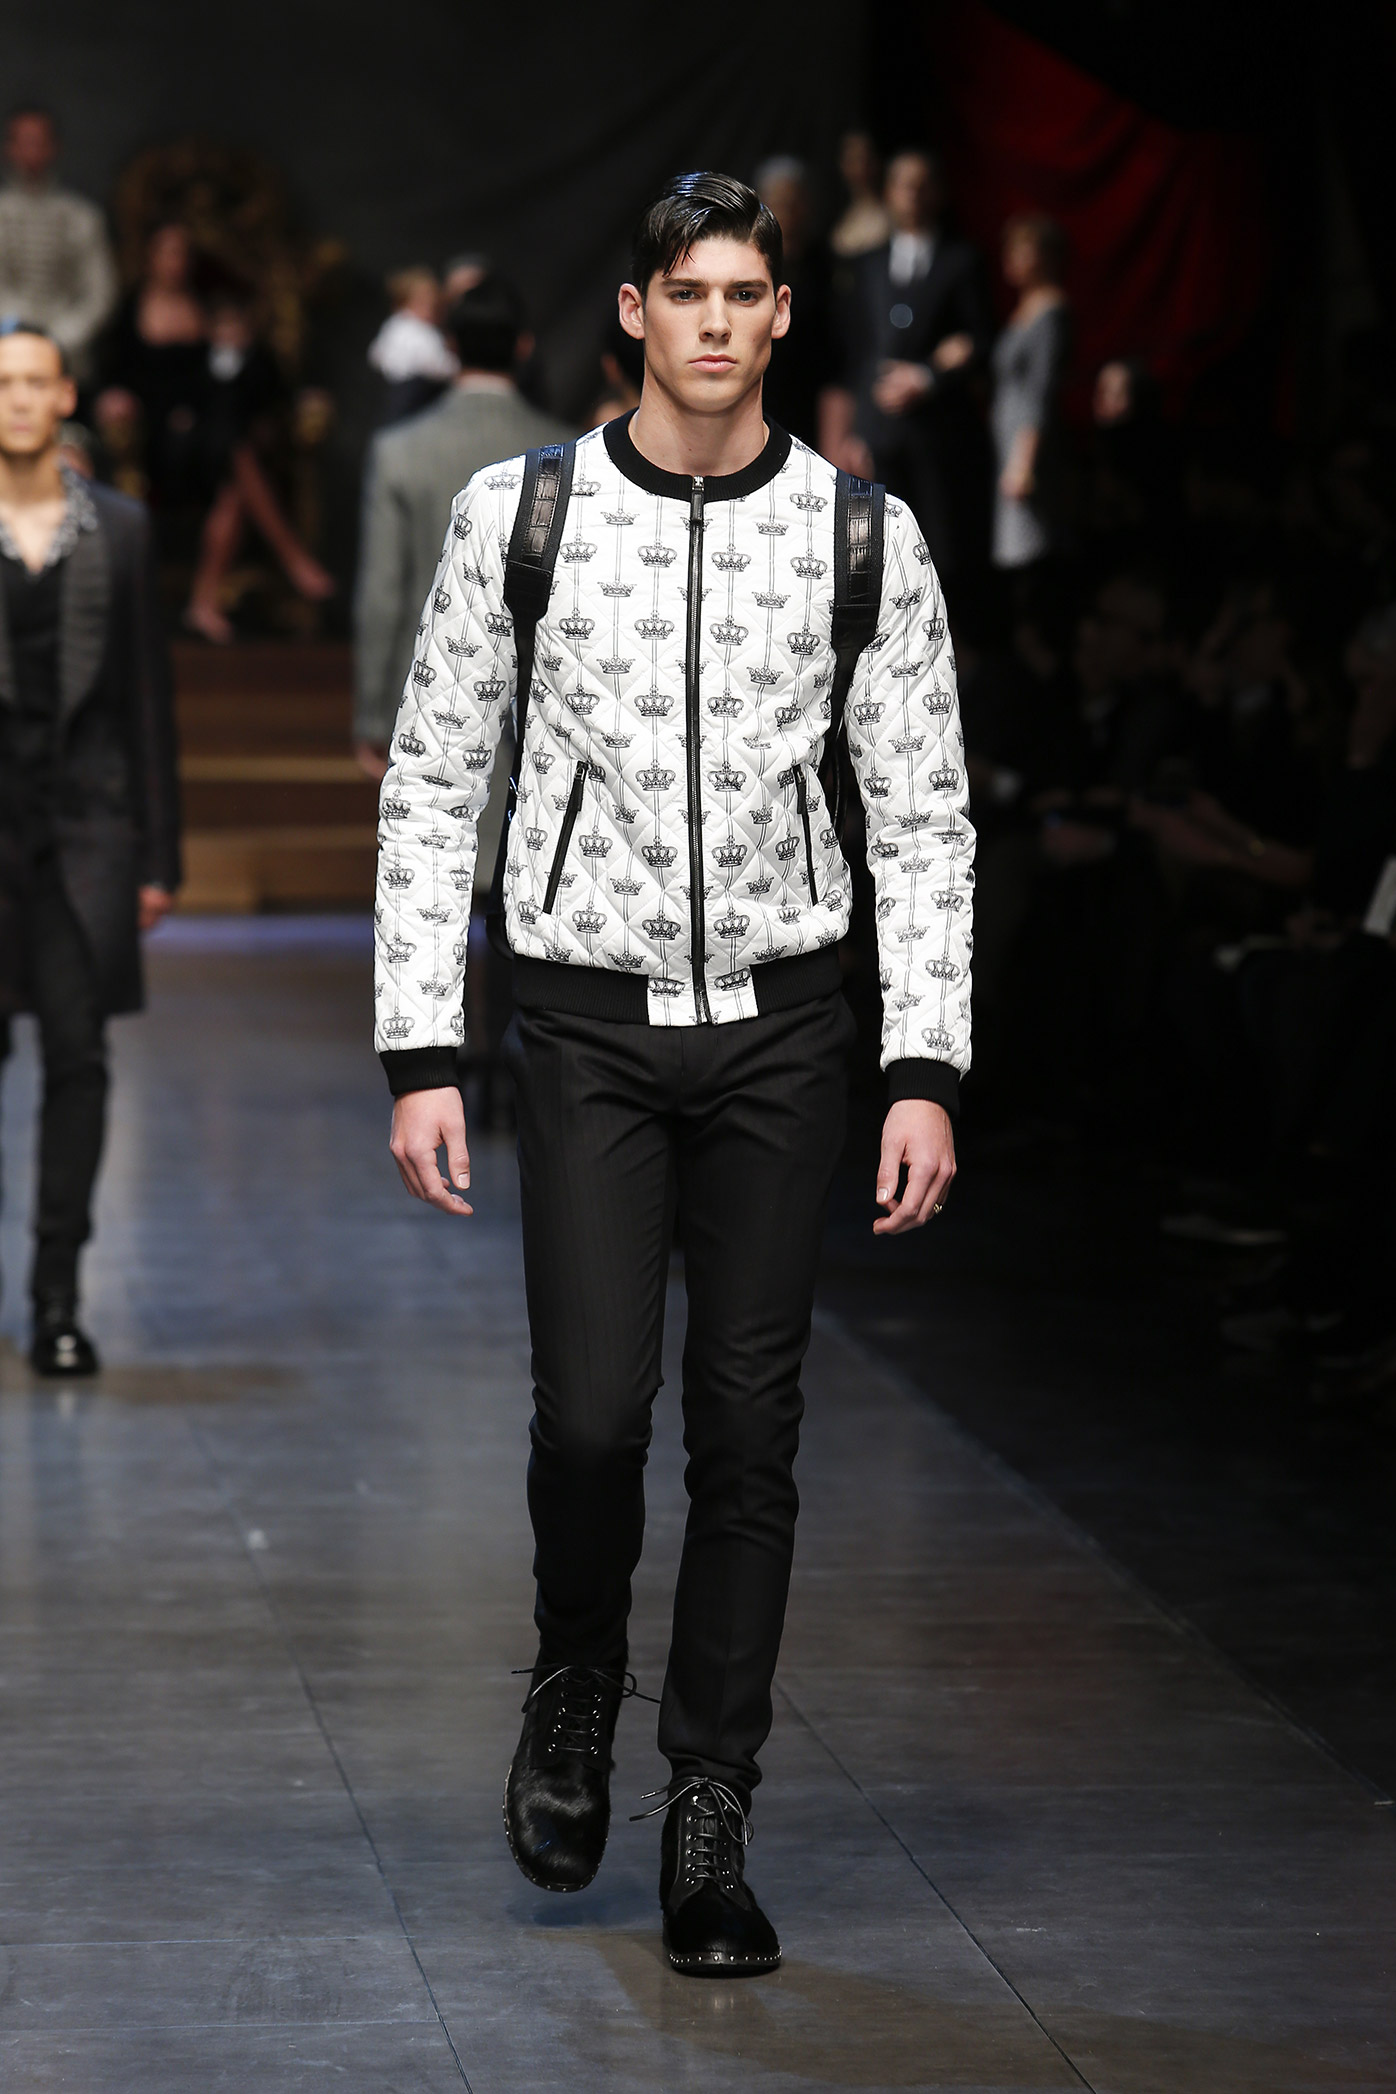 dolce-and-gabbana-winter-2016-men-fashion-show-runway-57-zoom.jpg